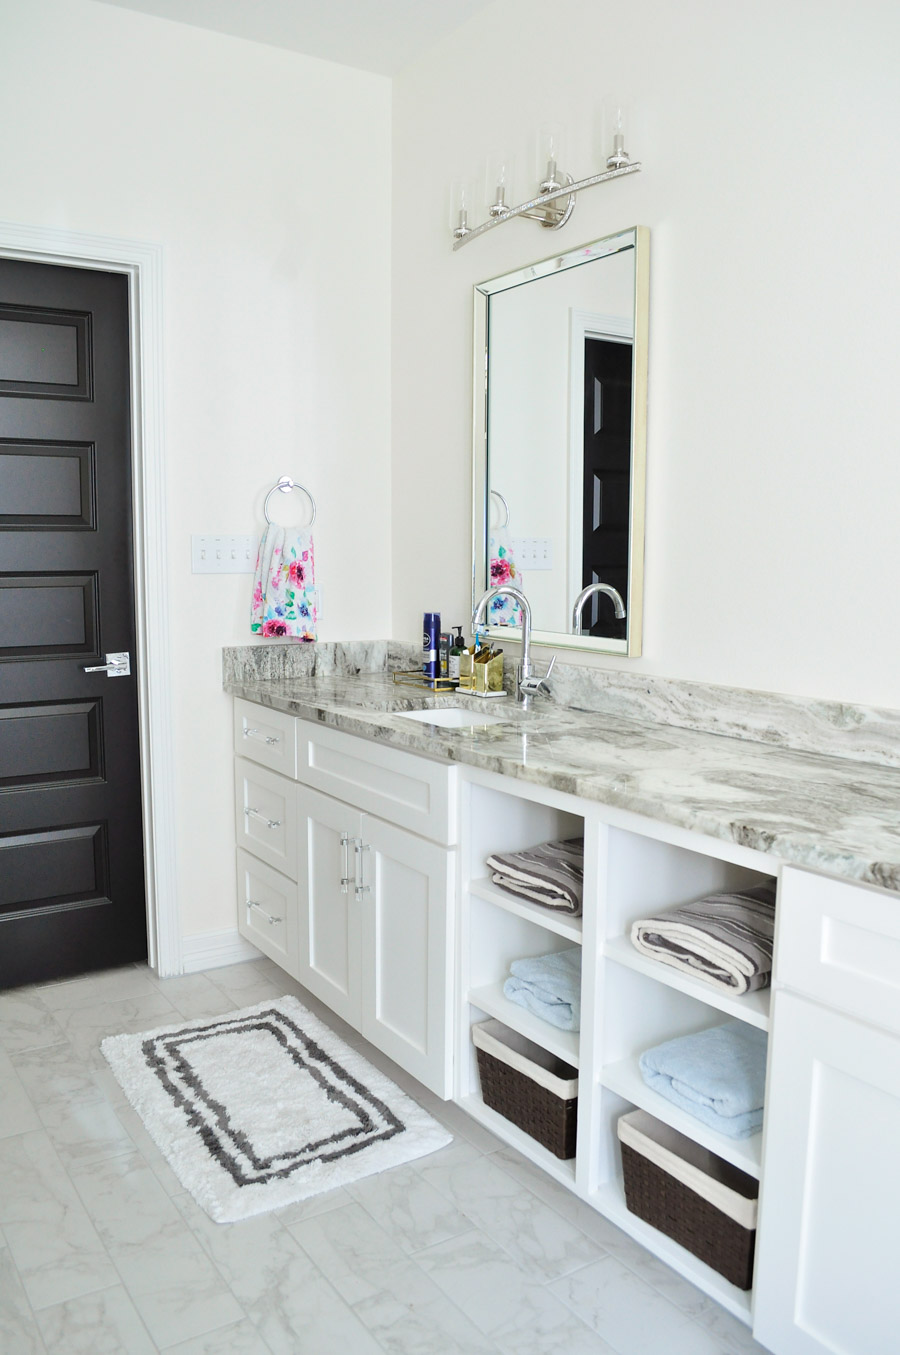 An alabaster white bathroom with black interior doors and chrome and mirrored finishes.